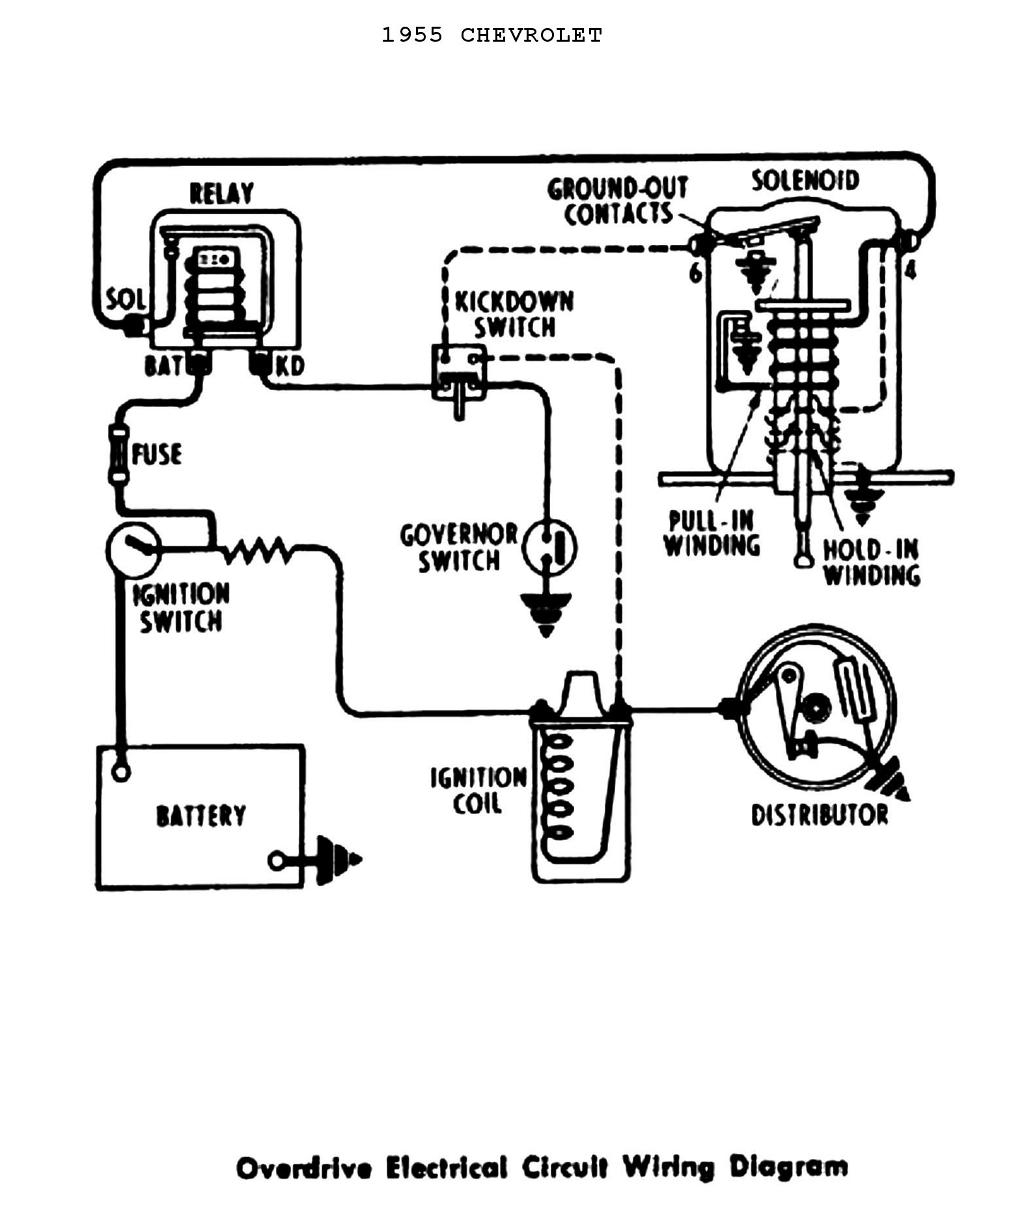 89 mustang efi wiring diagram free download wiring diagram schematic